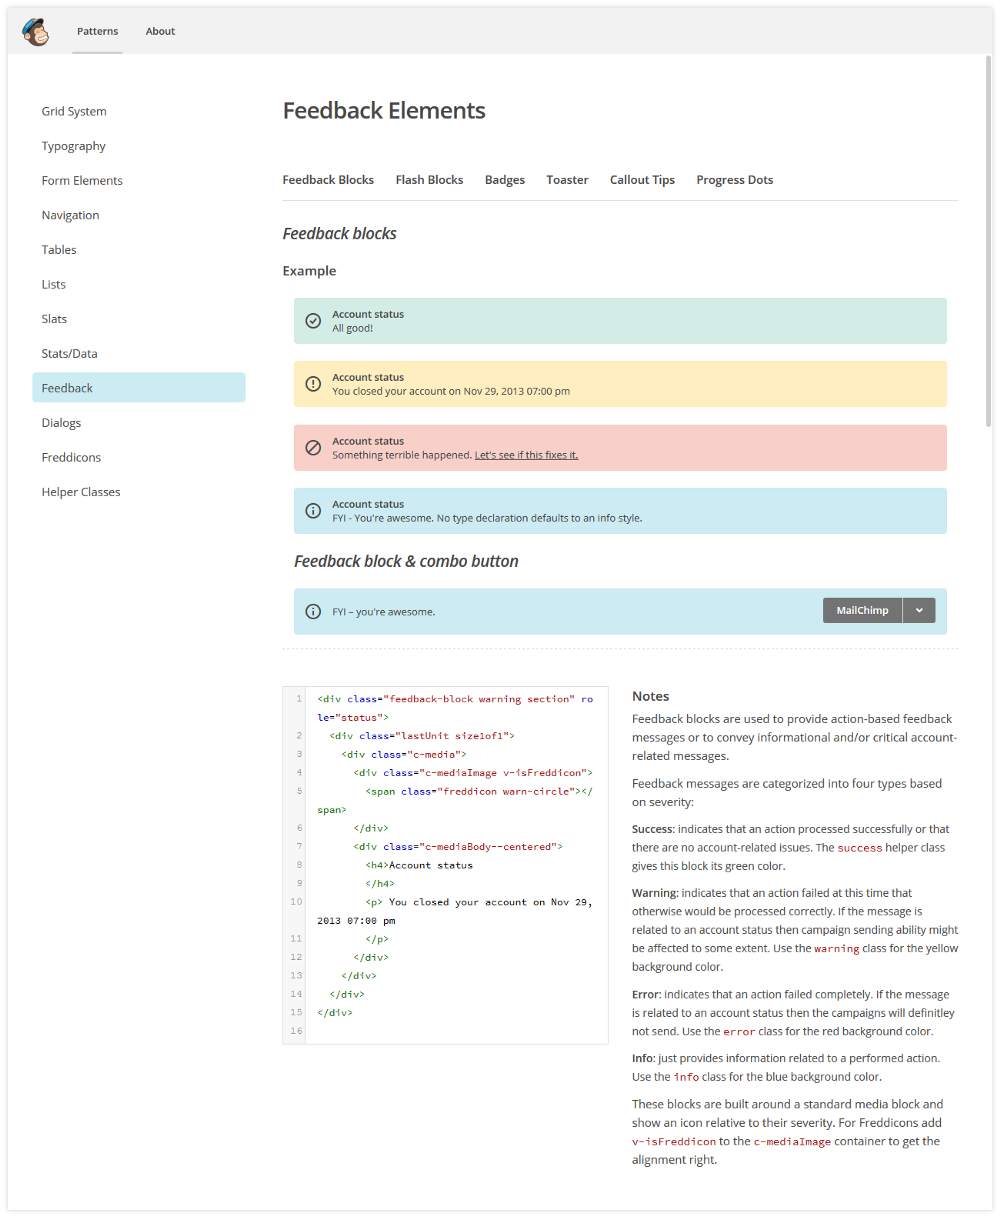 codeblick DigitalerStyleguide Feedback Elements